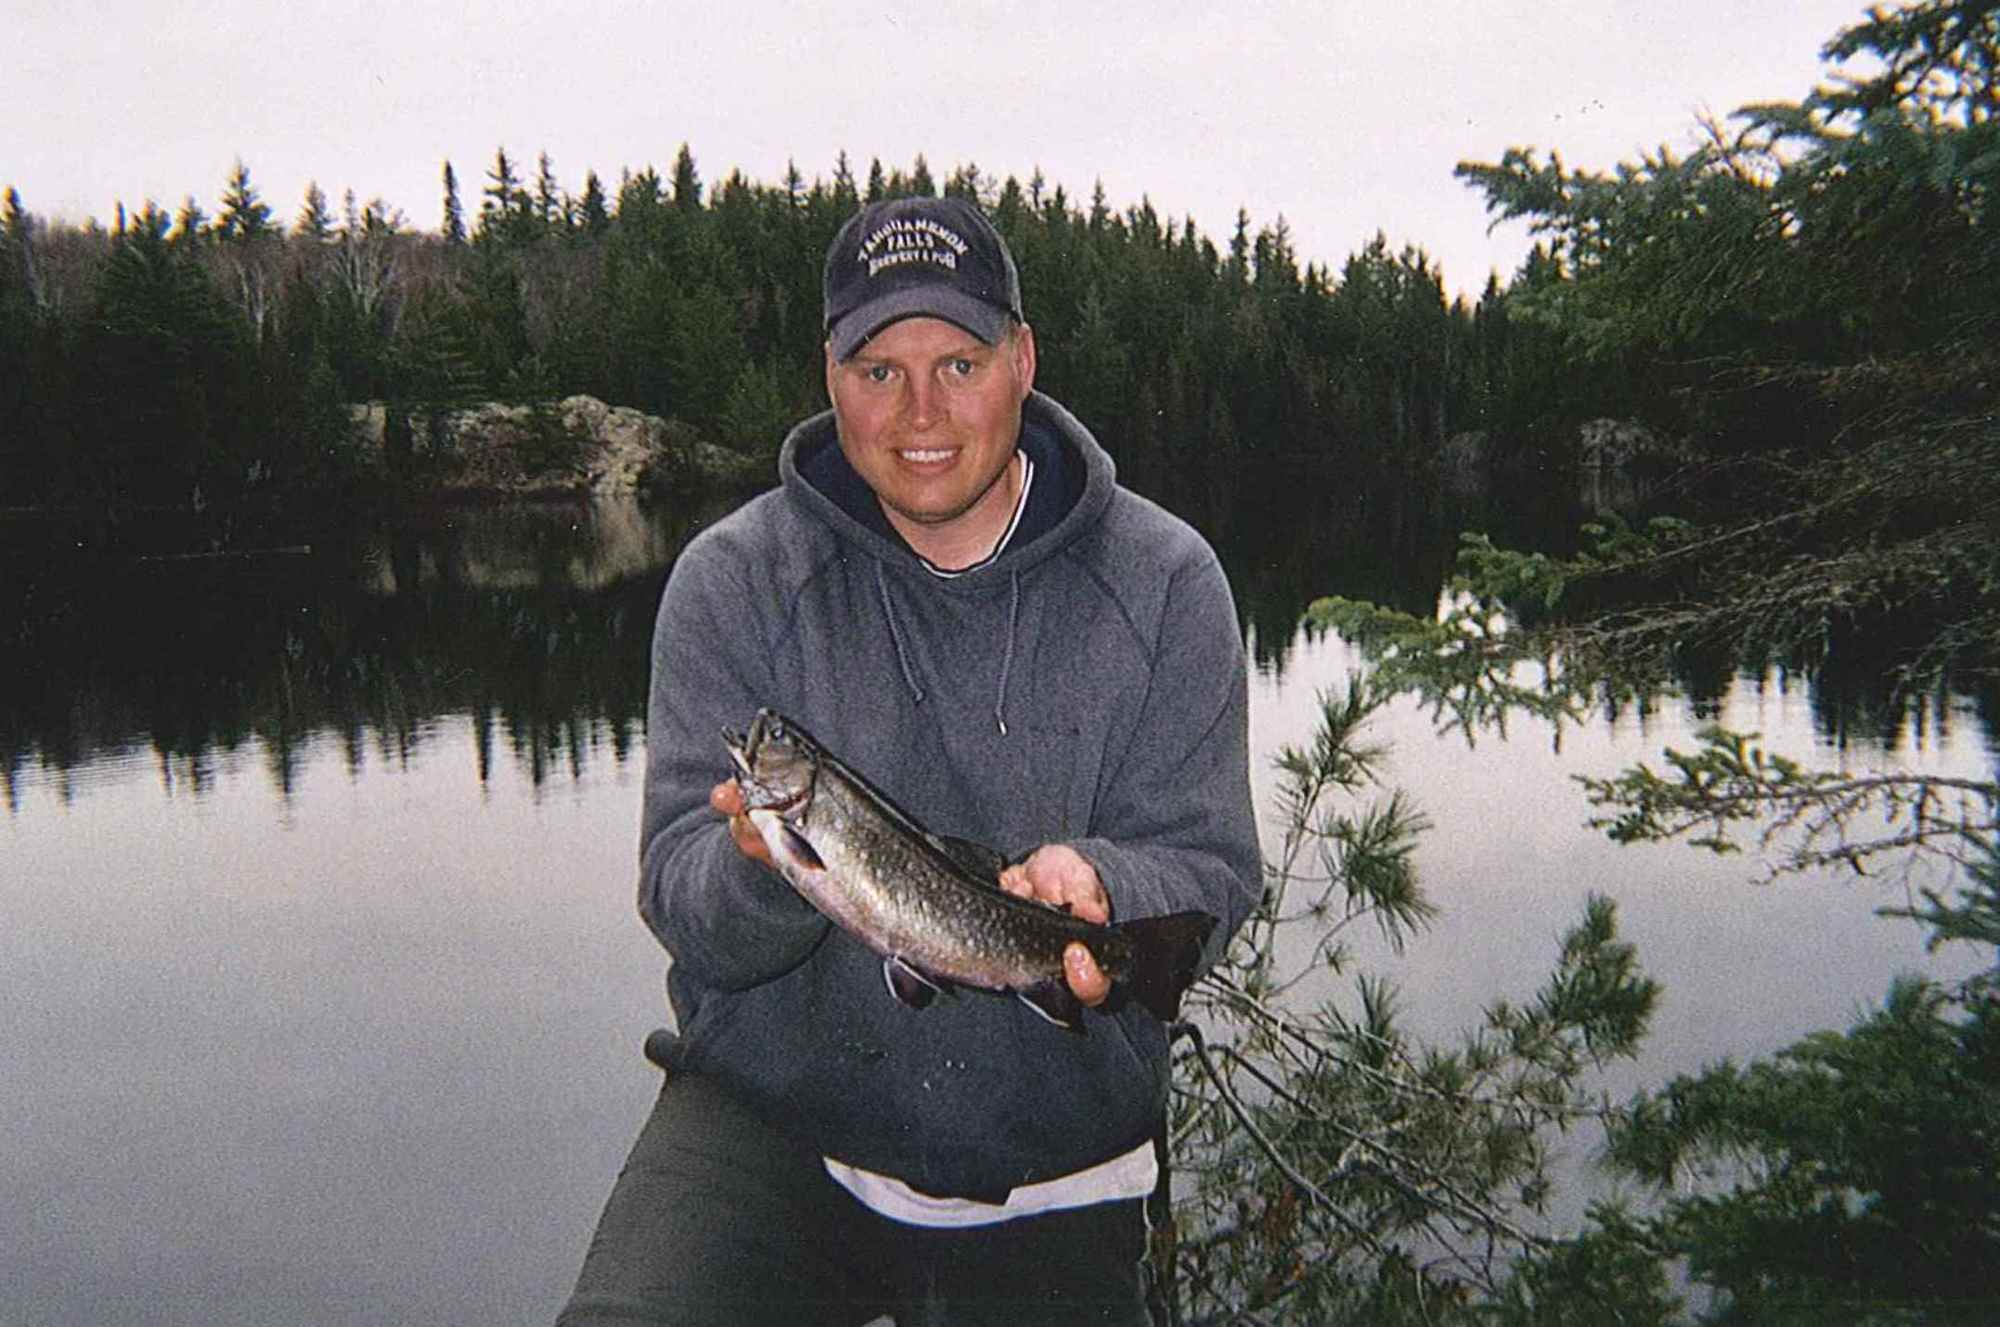 Rob Katona with a sizeable catch from an Upper Peninsula brook trout lake.